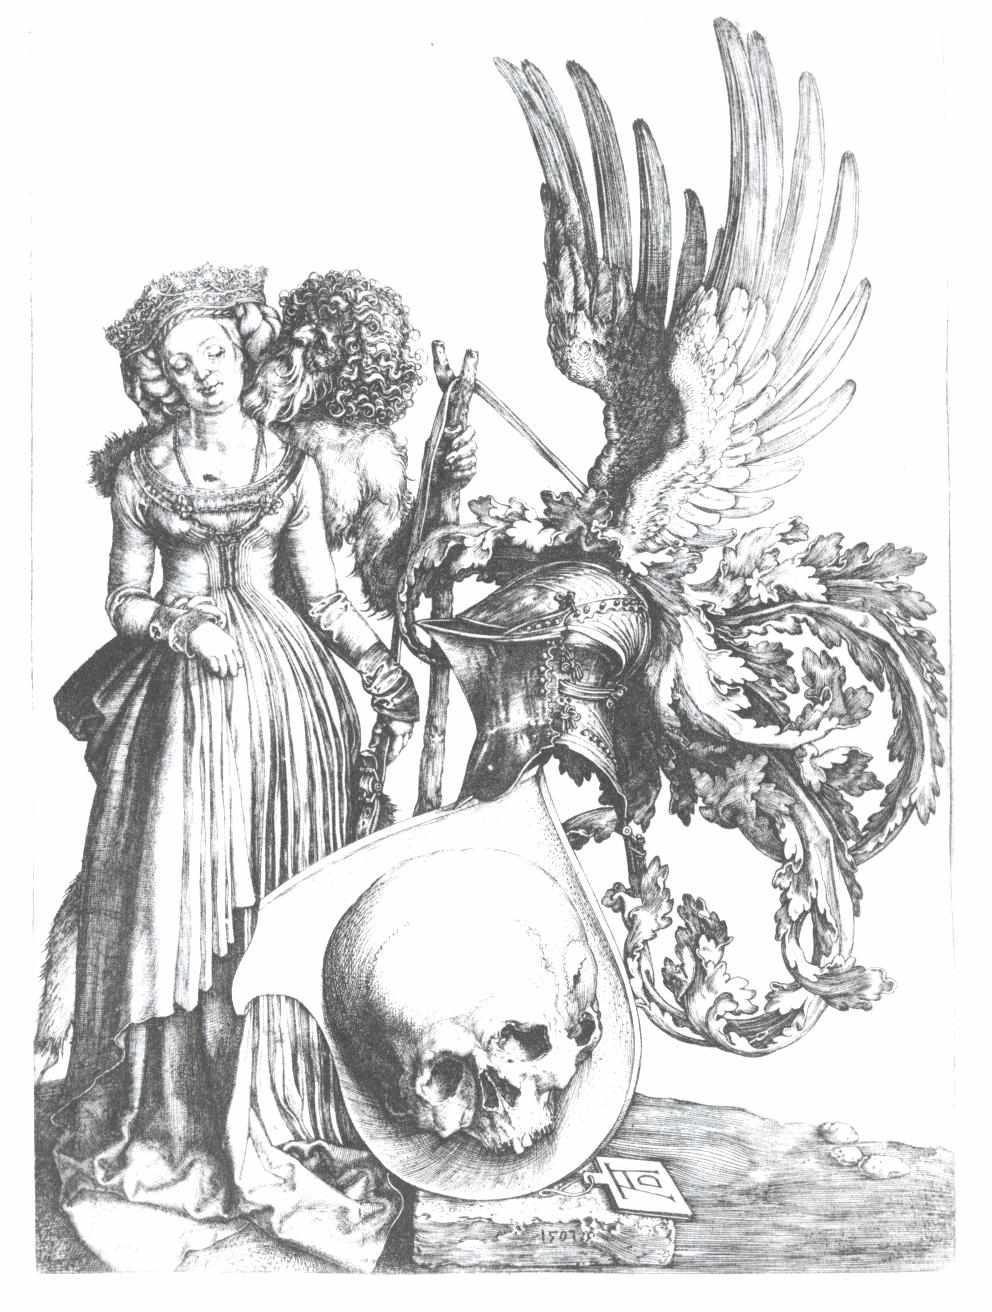 The coat of arms with the skull - Albrecht Durer